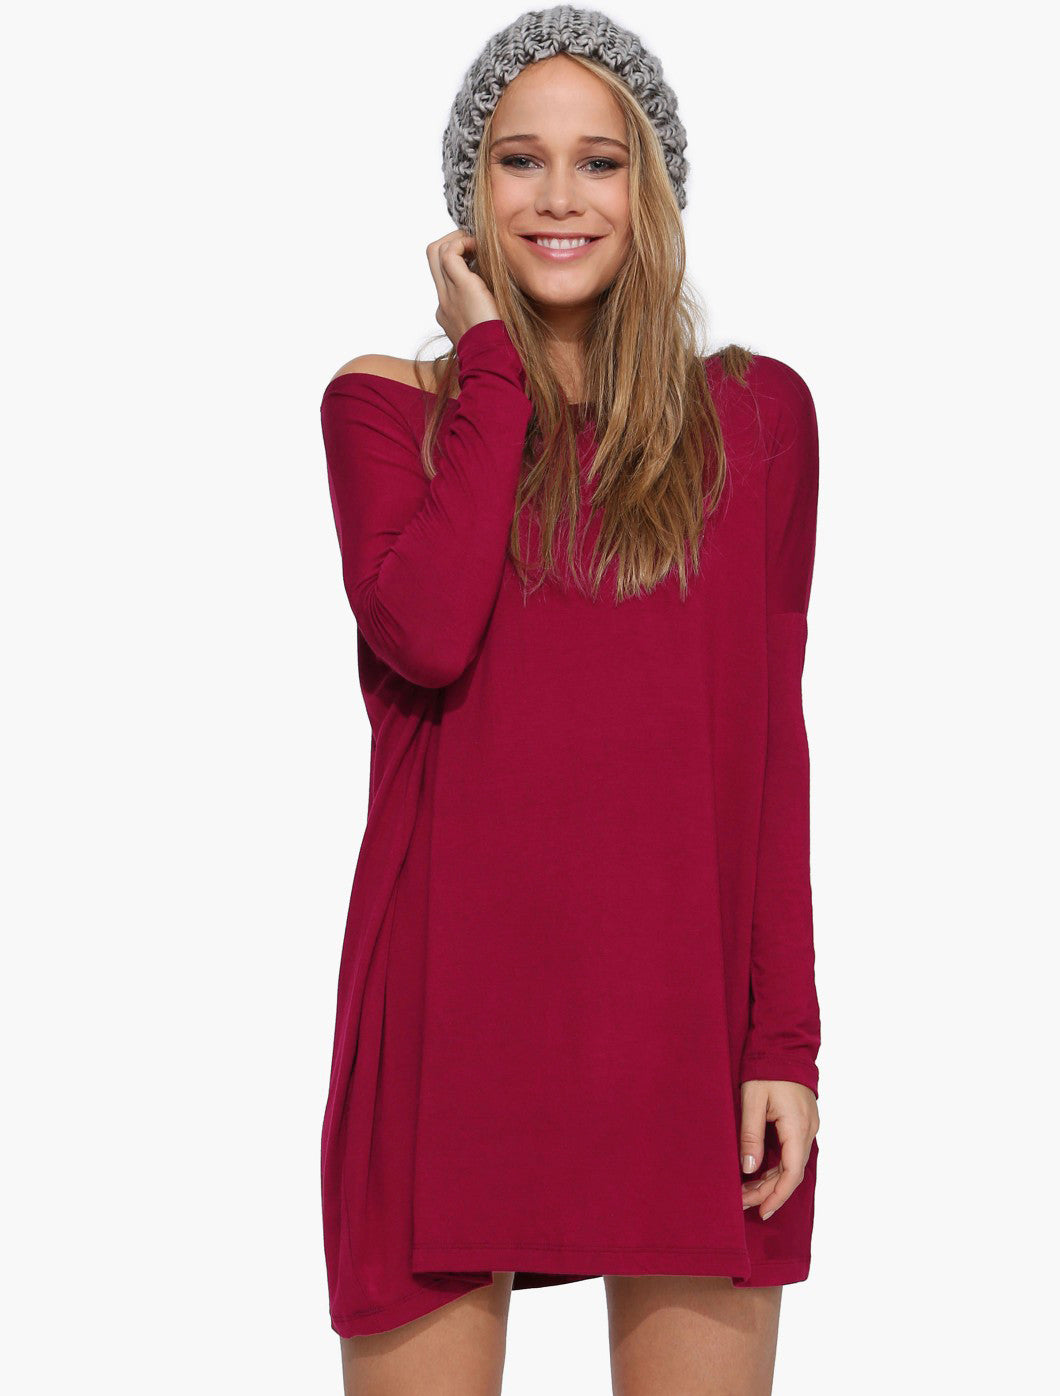 Garnets of Love Knit Dress